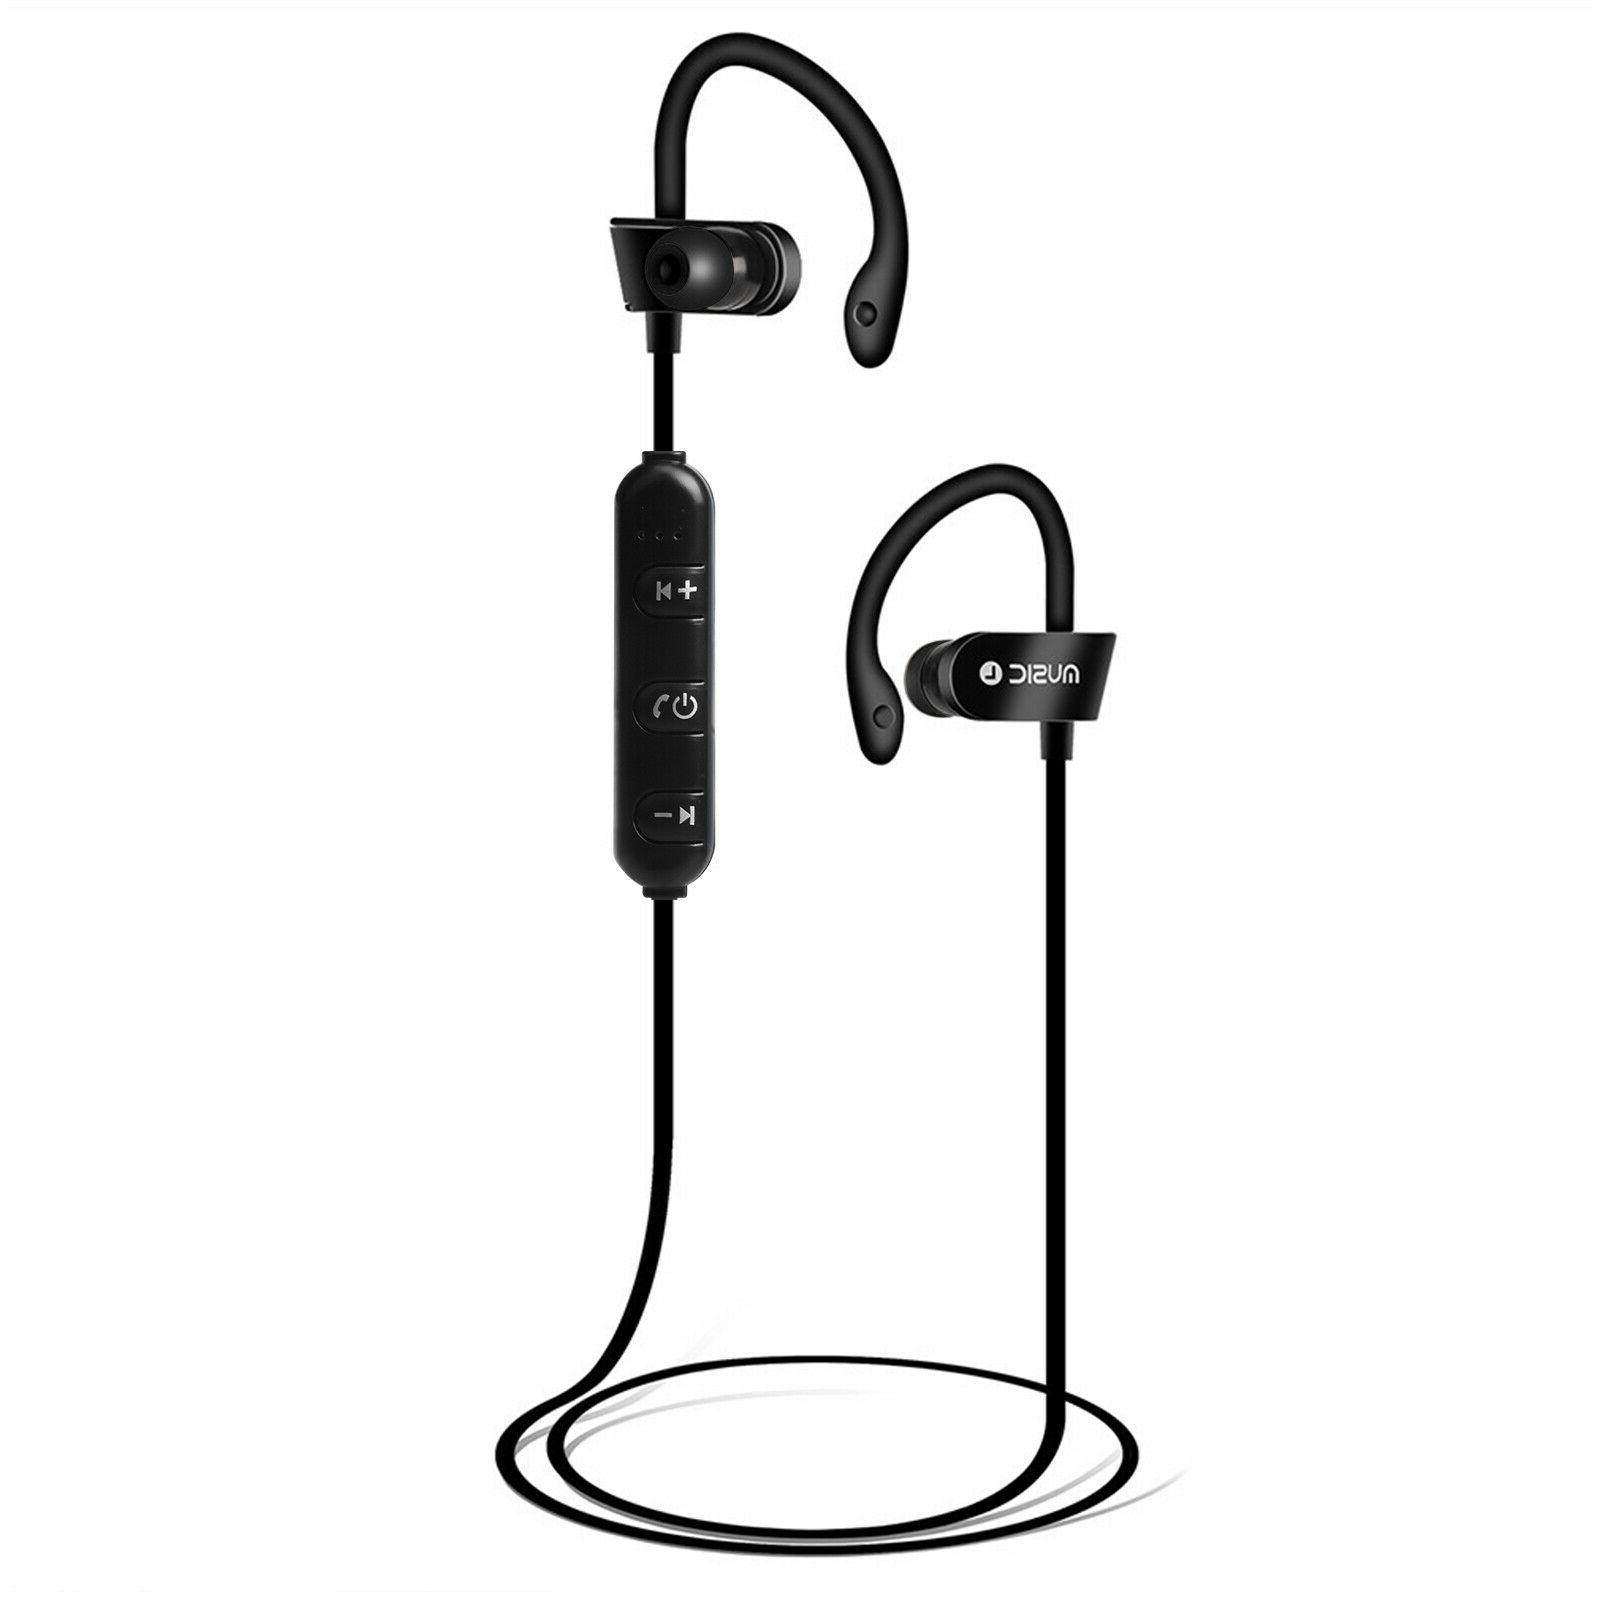 Sweatproof Sport Wireless Earbuds